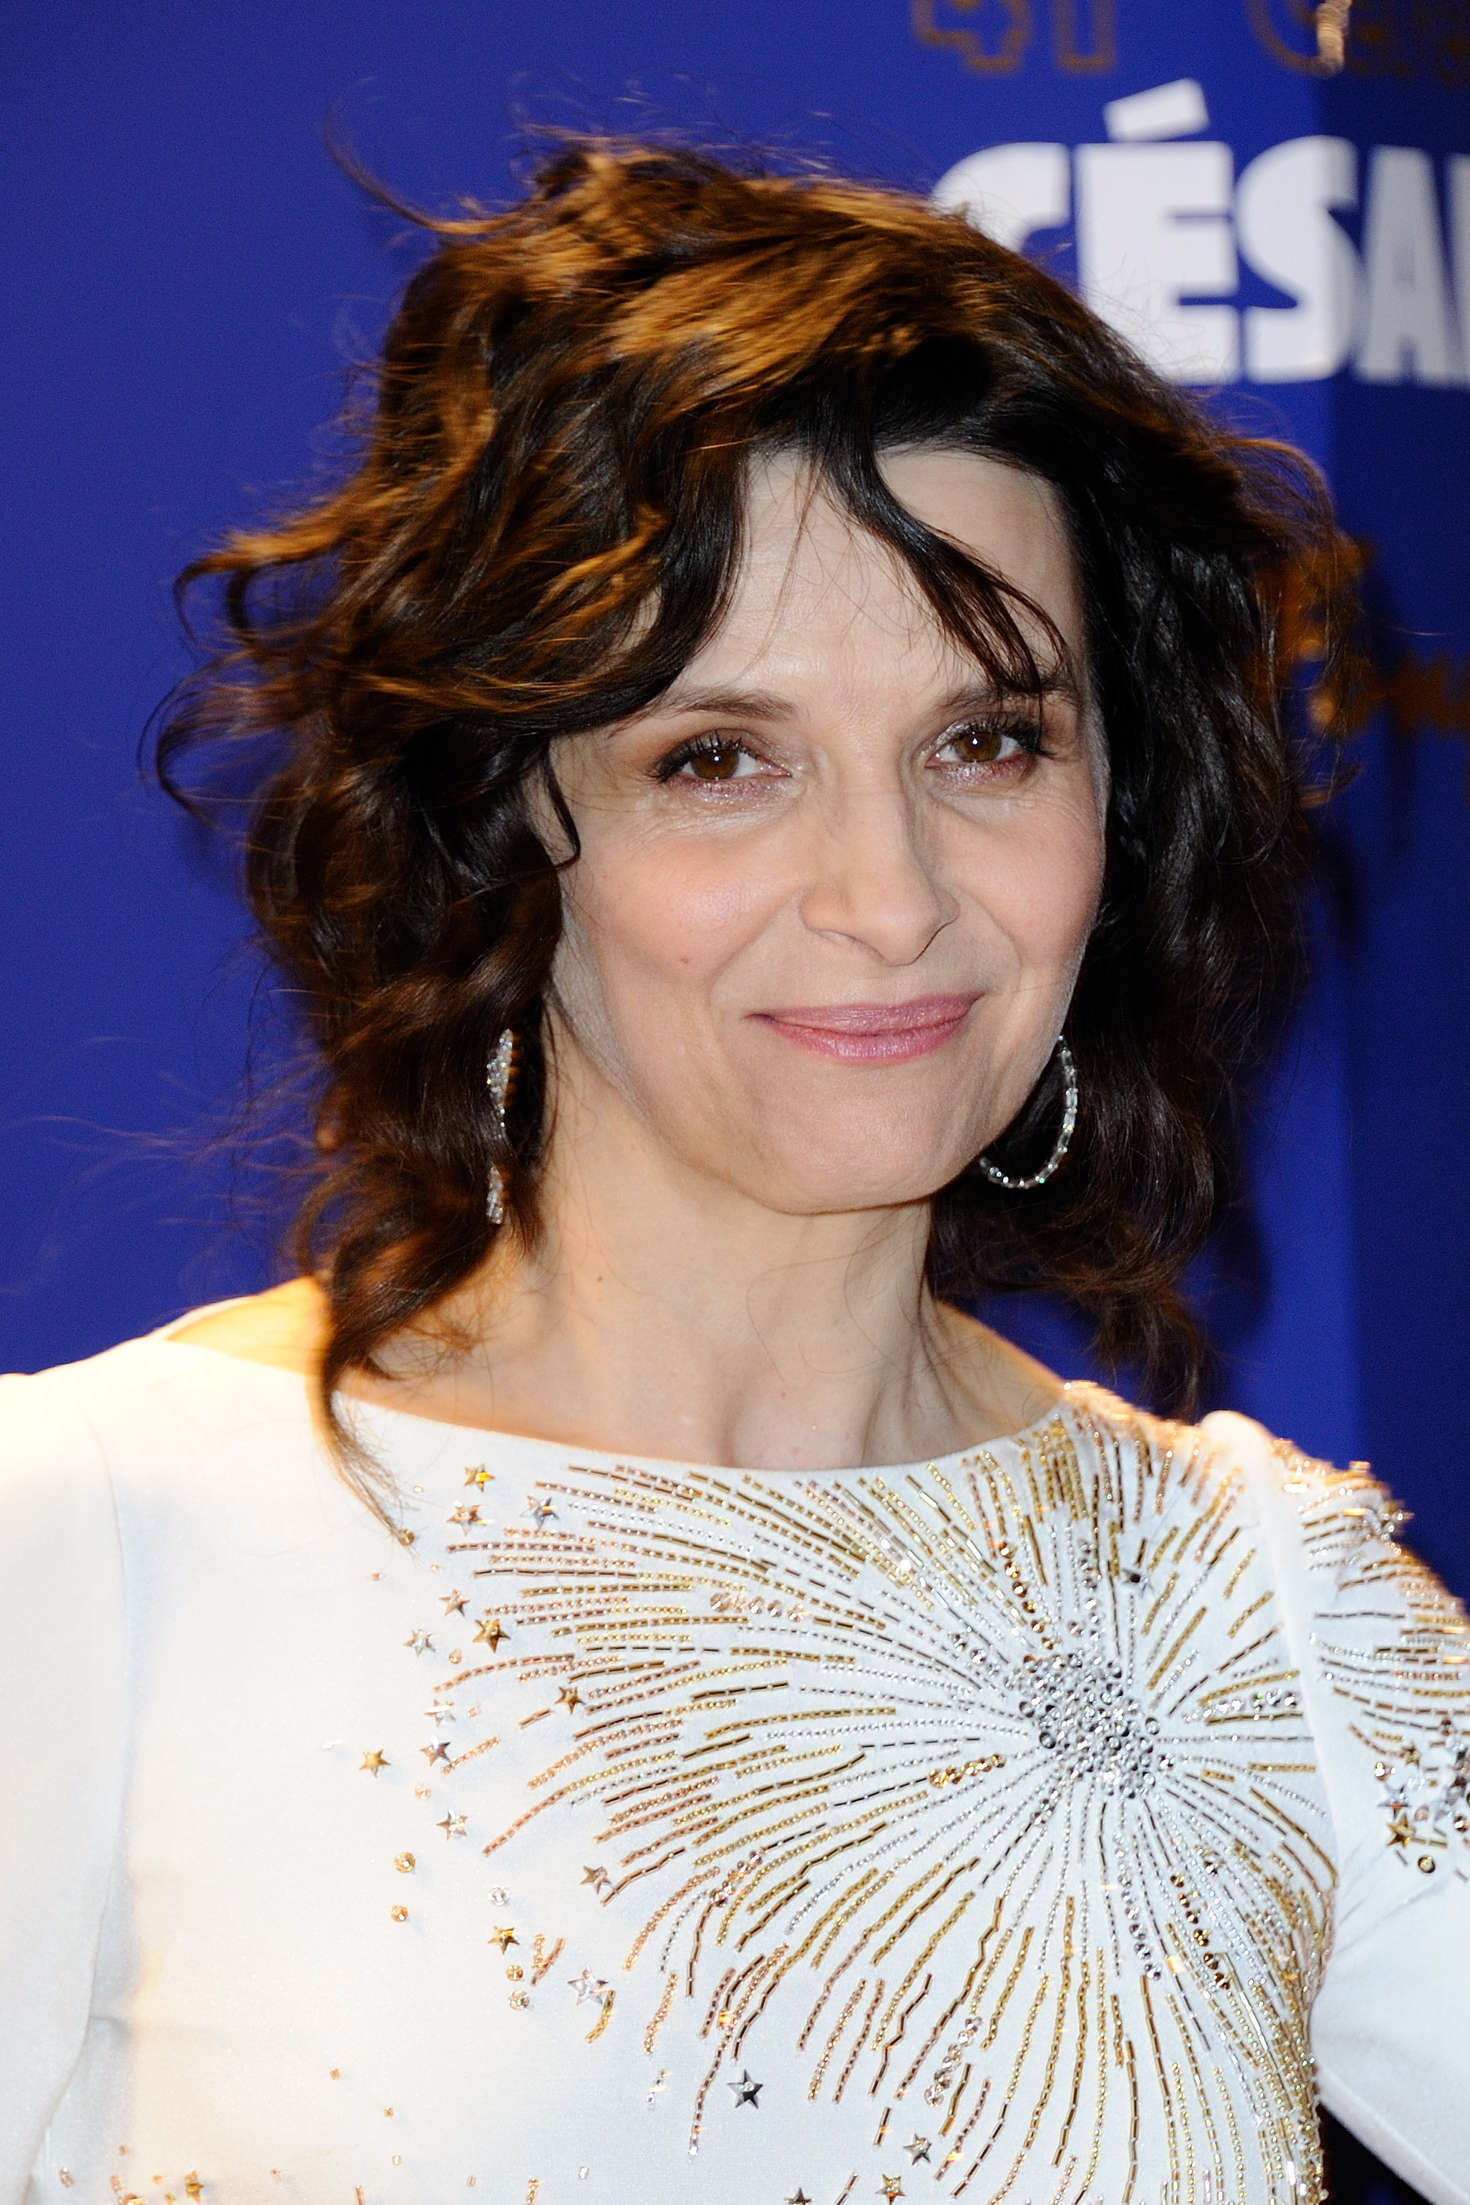 Juliette Binoche Cesar After Party Diner in Paris